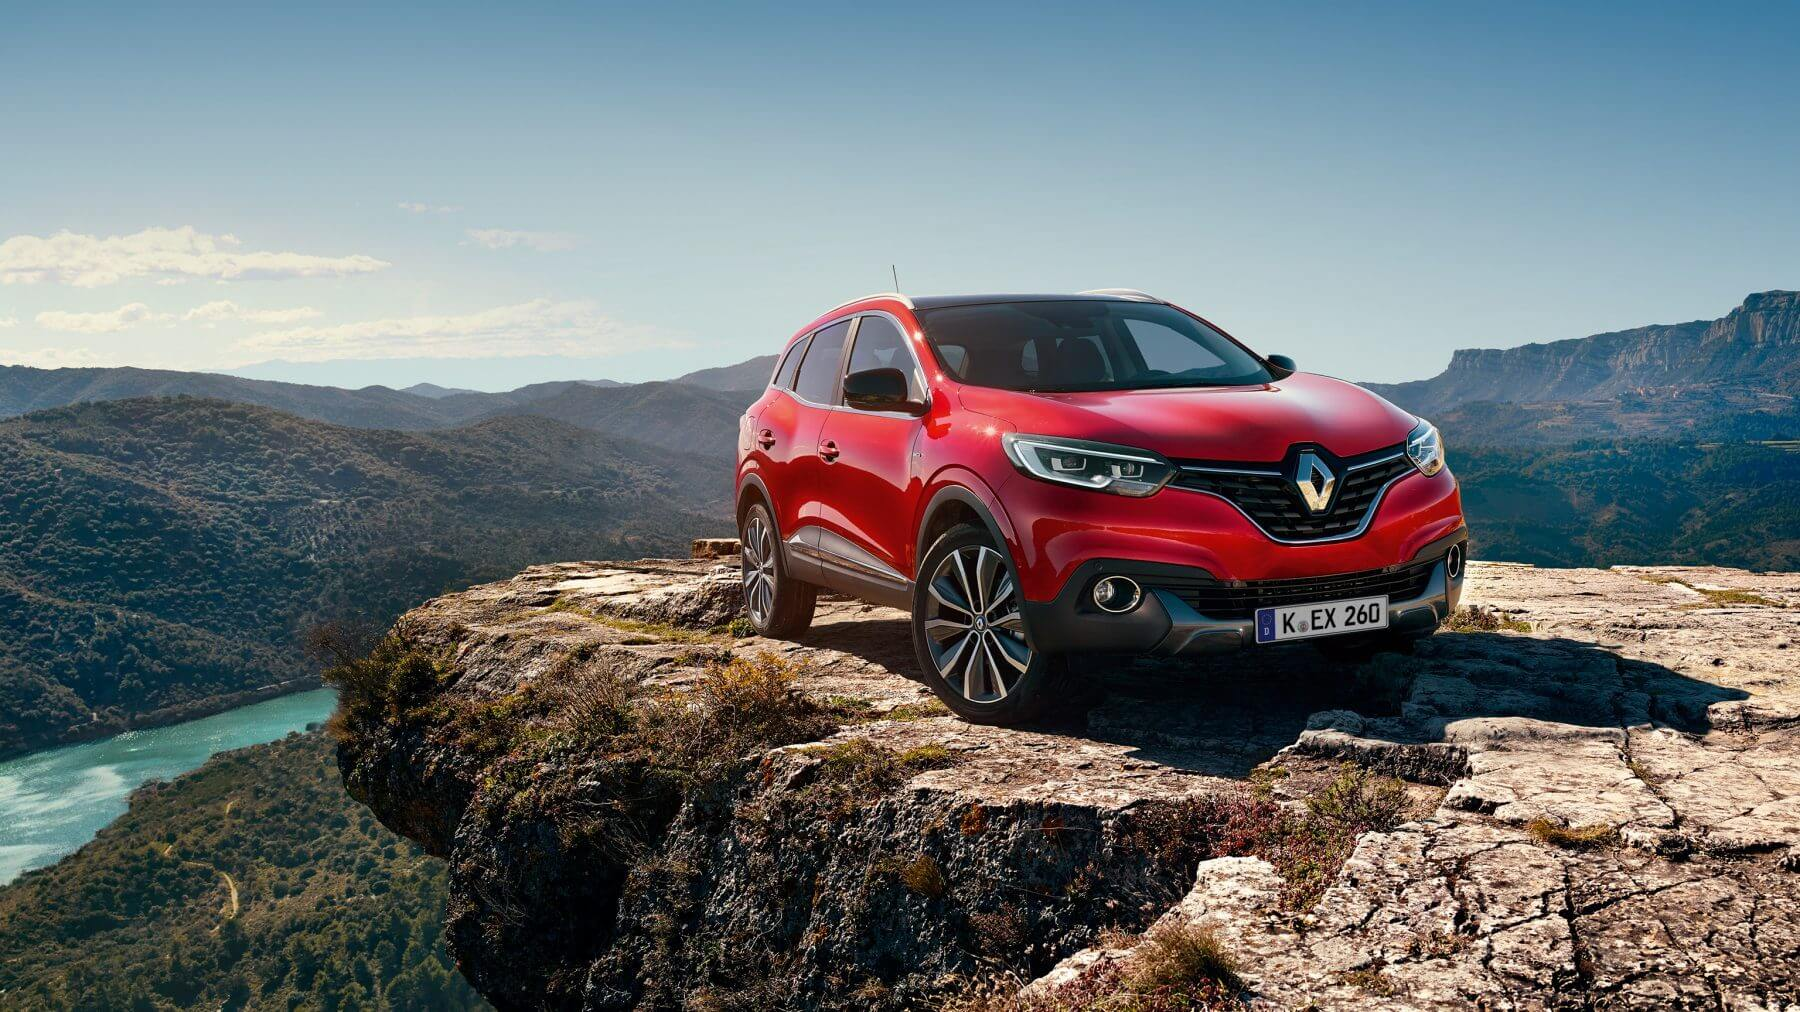 renault kadjar leasing f r 124 euro im monat netto. Black Bedroom Furniture Sets. Home Design Ideas